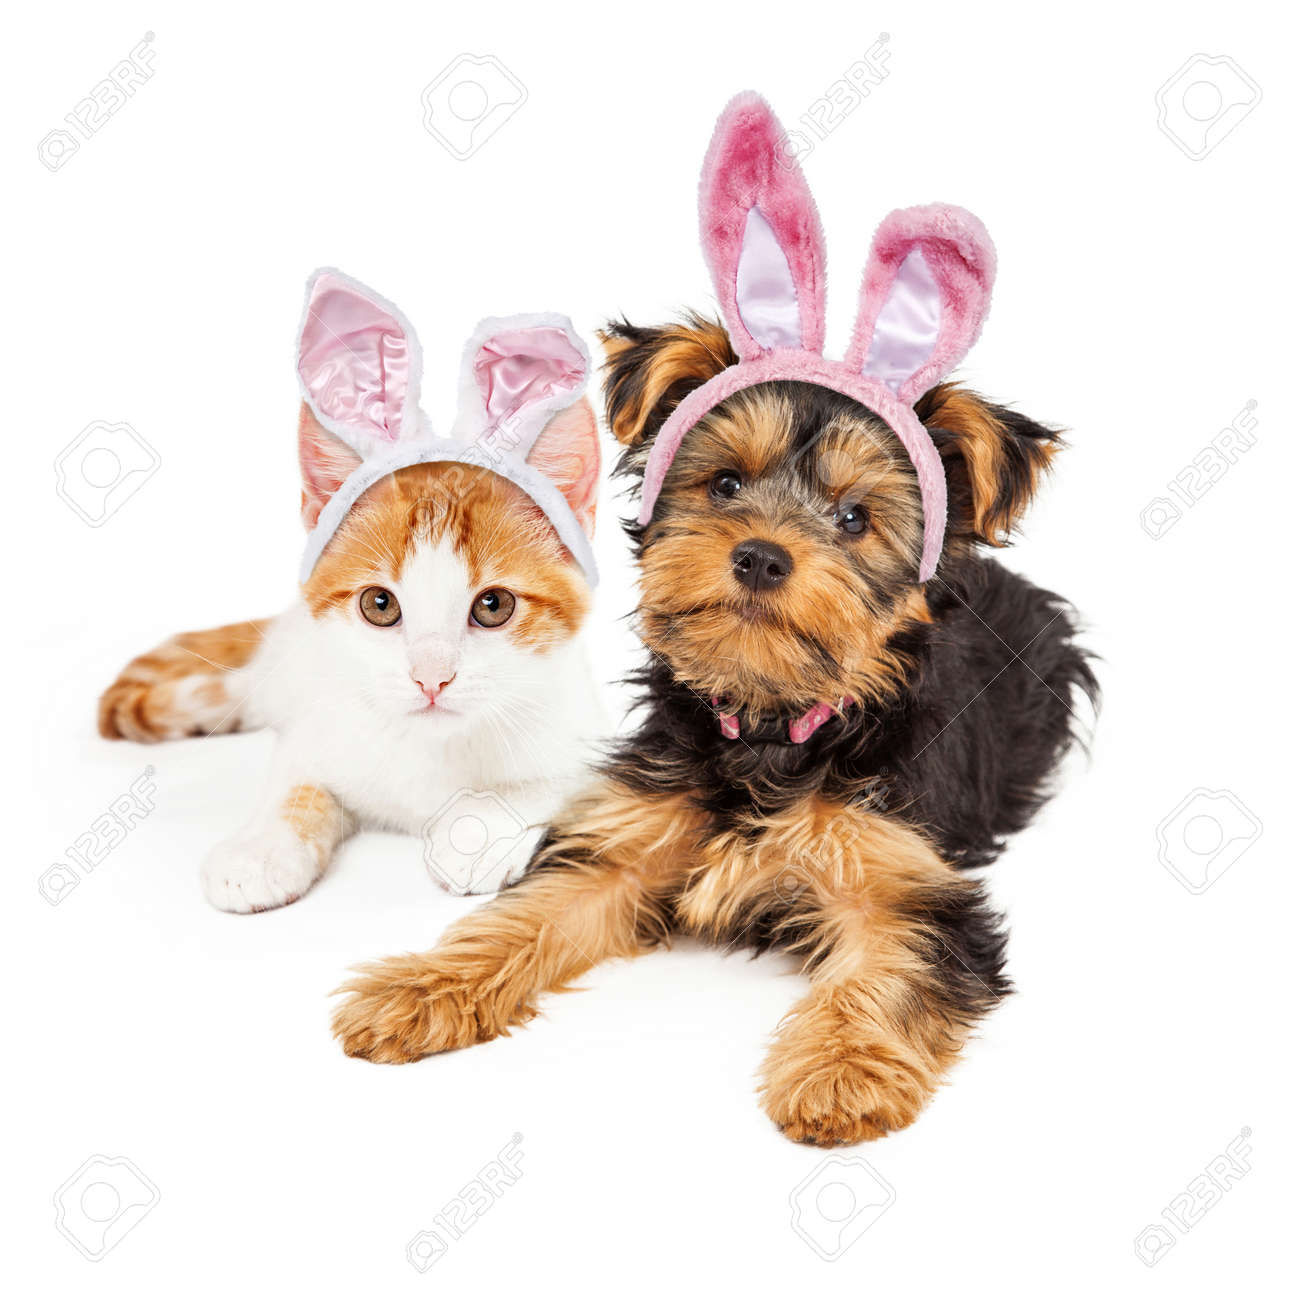 cute puppy and kitten laying together wearing pink easter bunny